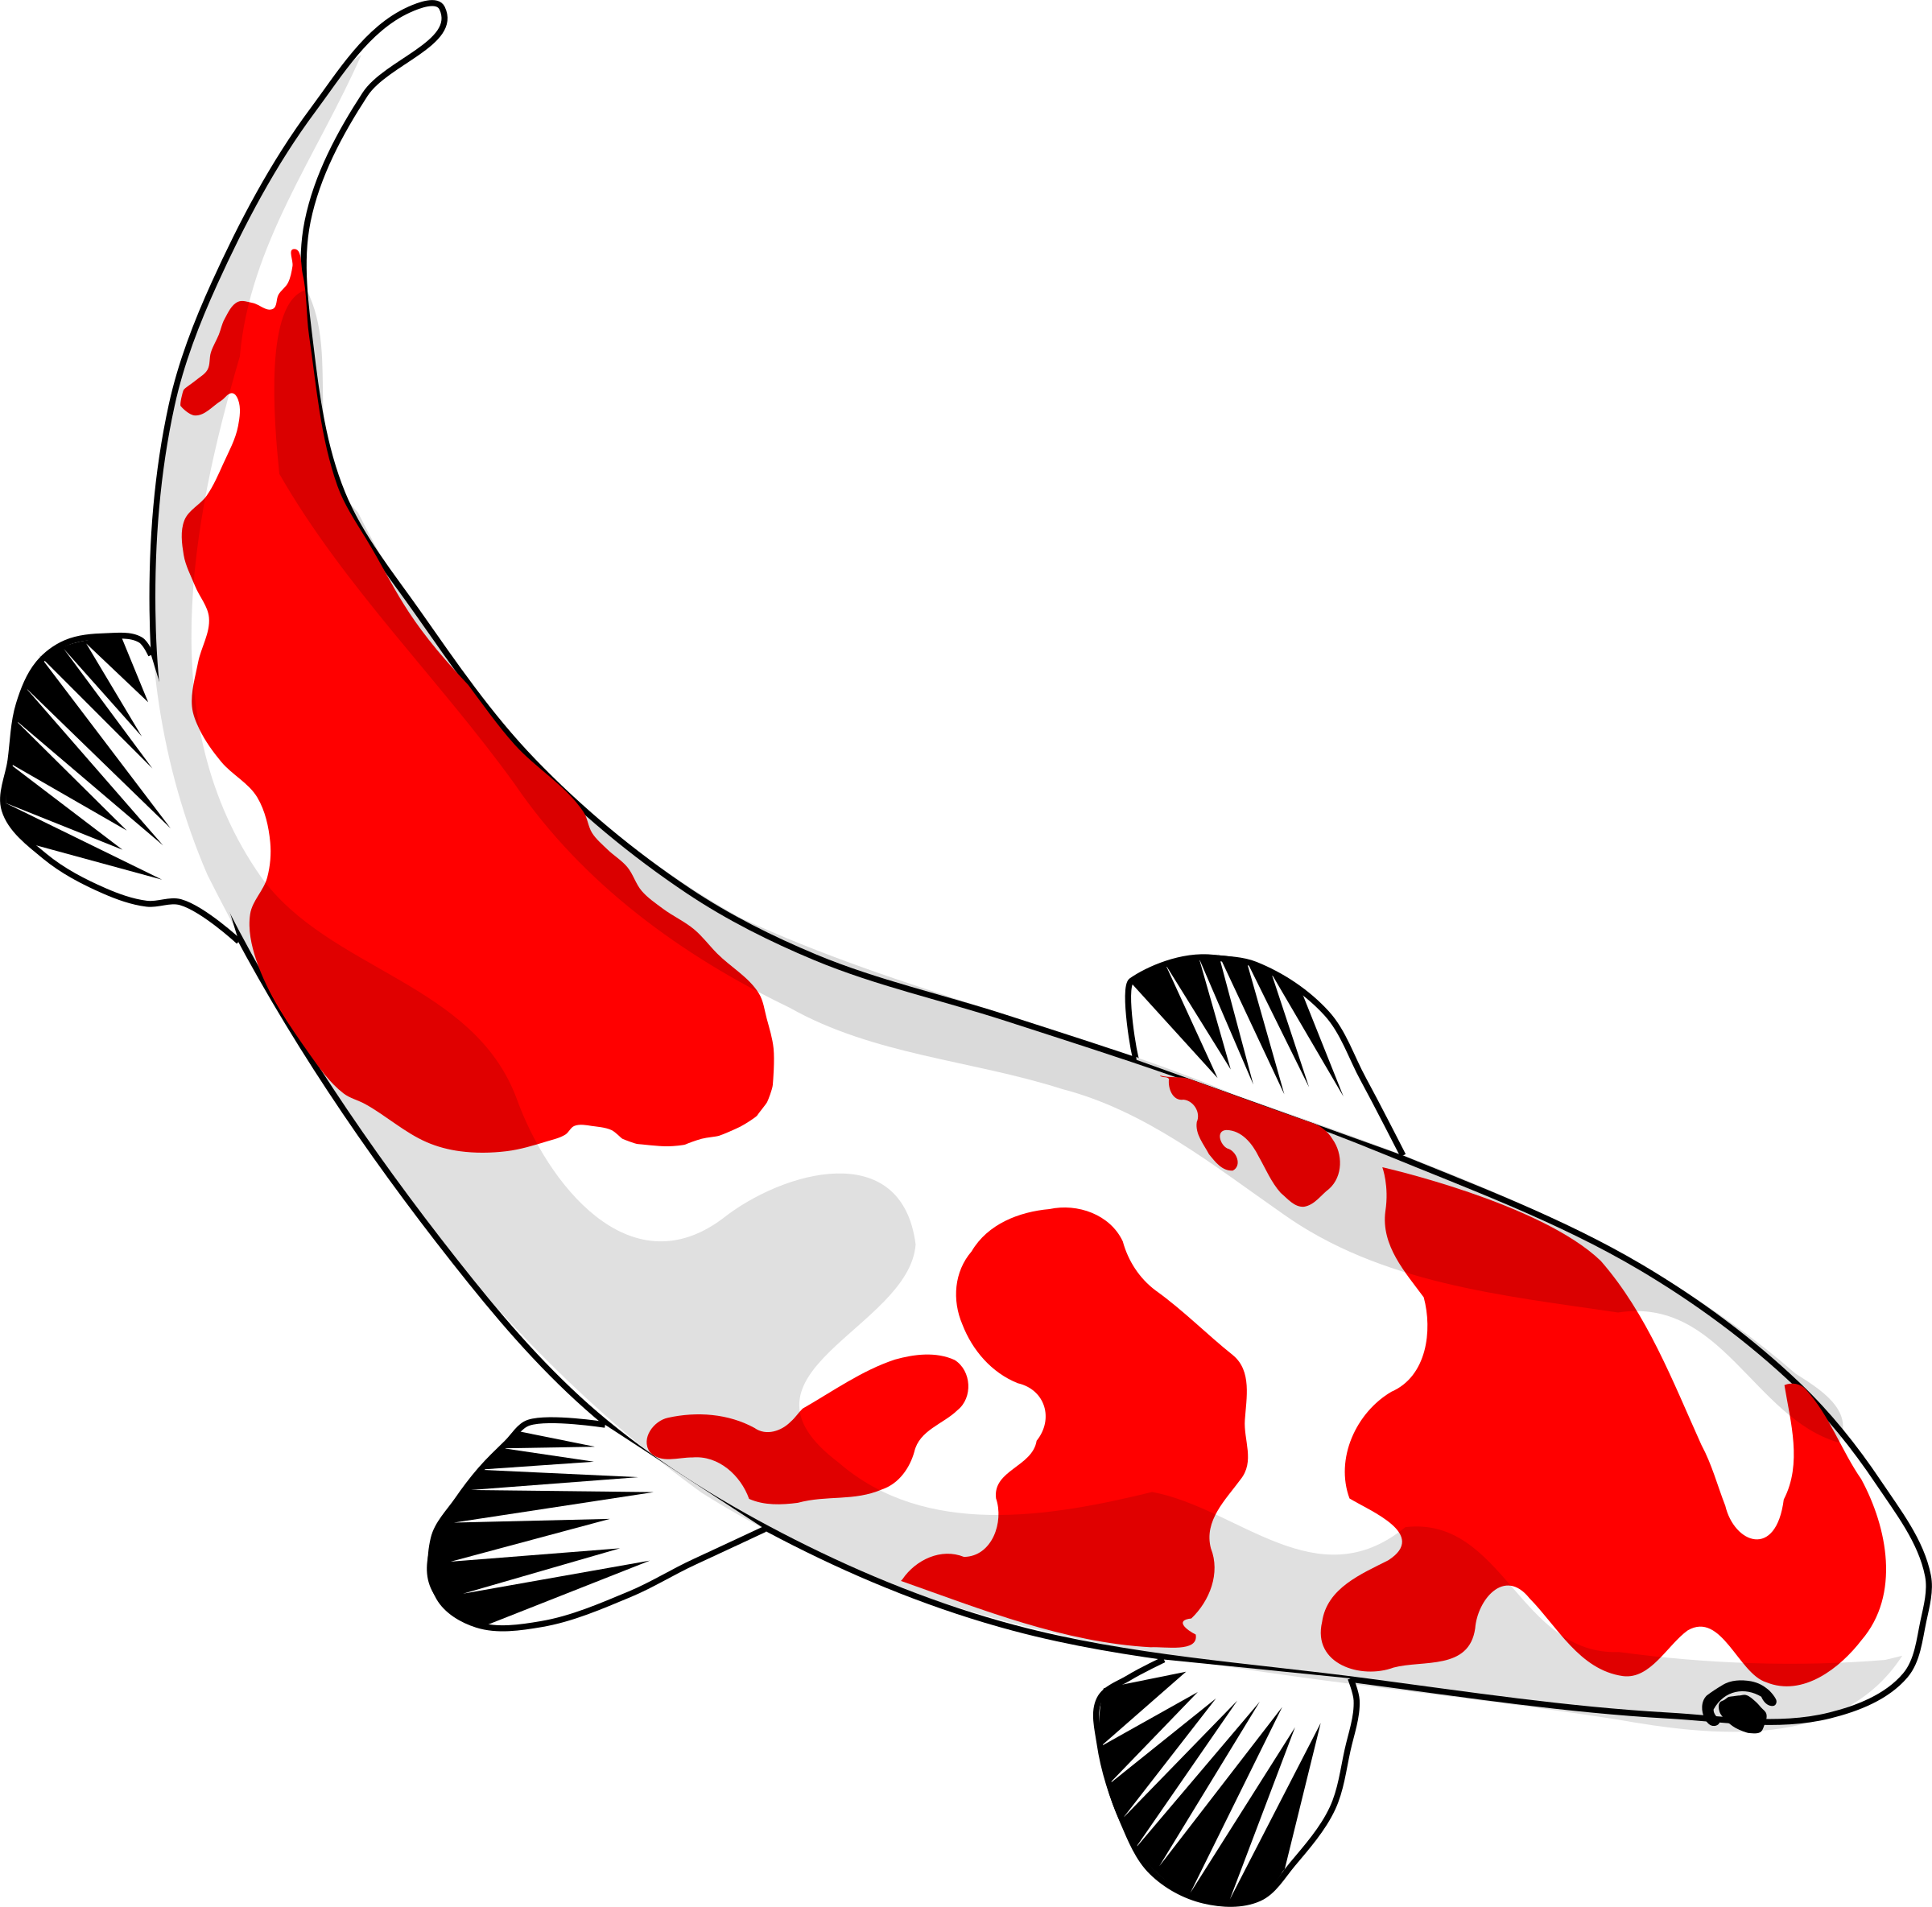 Koi clipart Inspiration Clipart Free Red Clipart